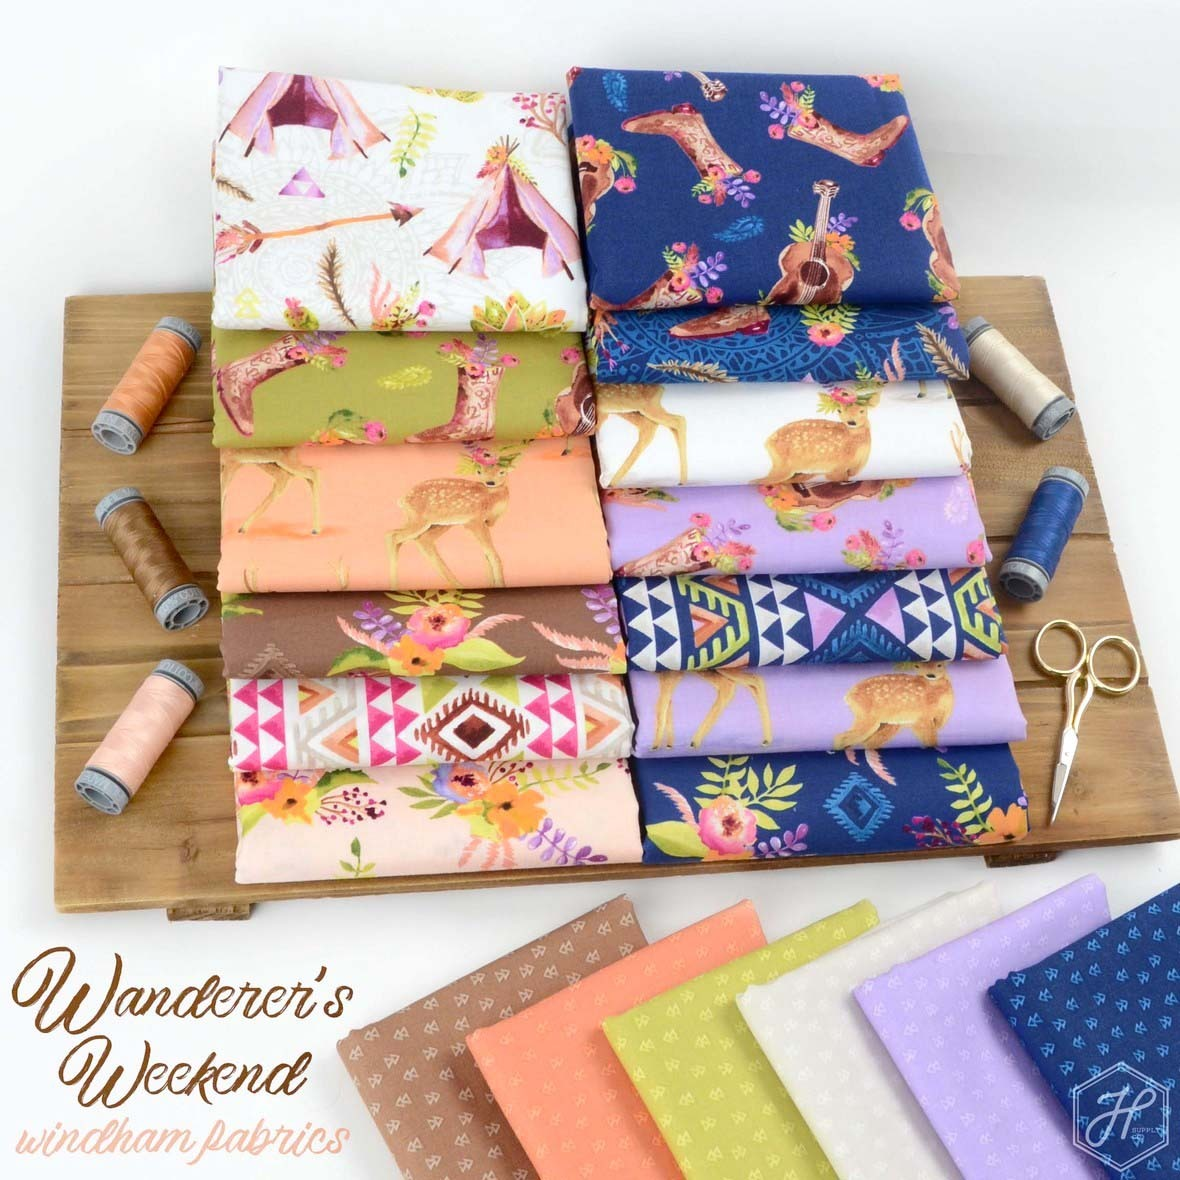 Wanderers Weekend Fabric Poster